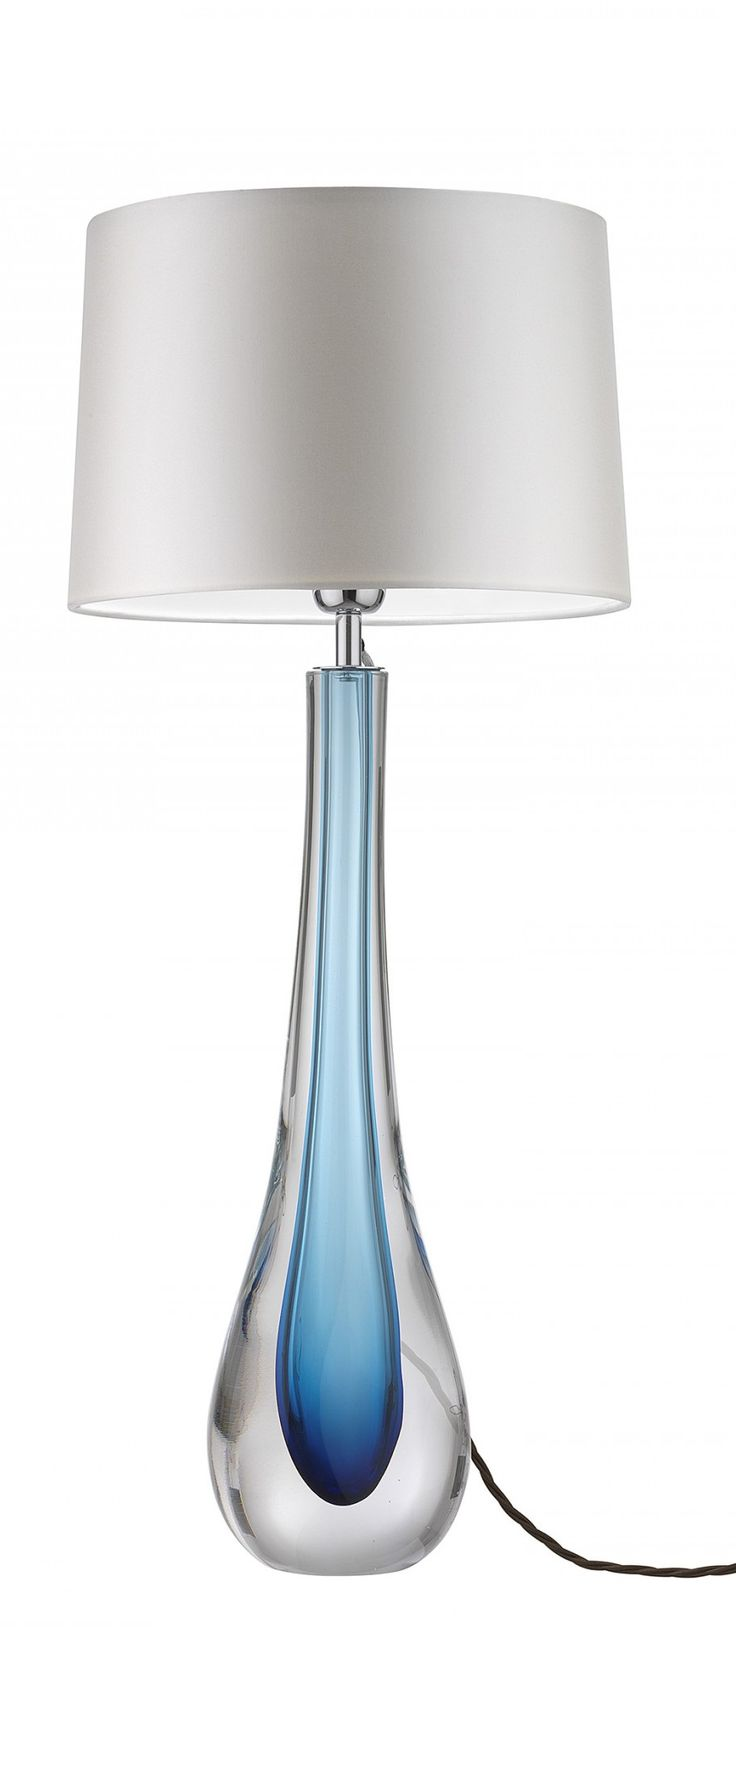 Best 25 Blue Lamps Ideas On Pinterest Blue Lamp Shade Beach Style Lamp Shades And Blue Table